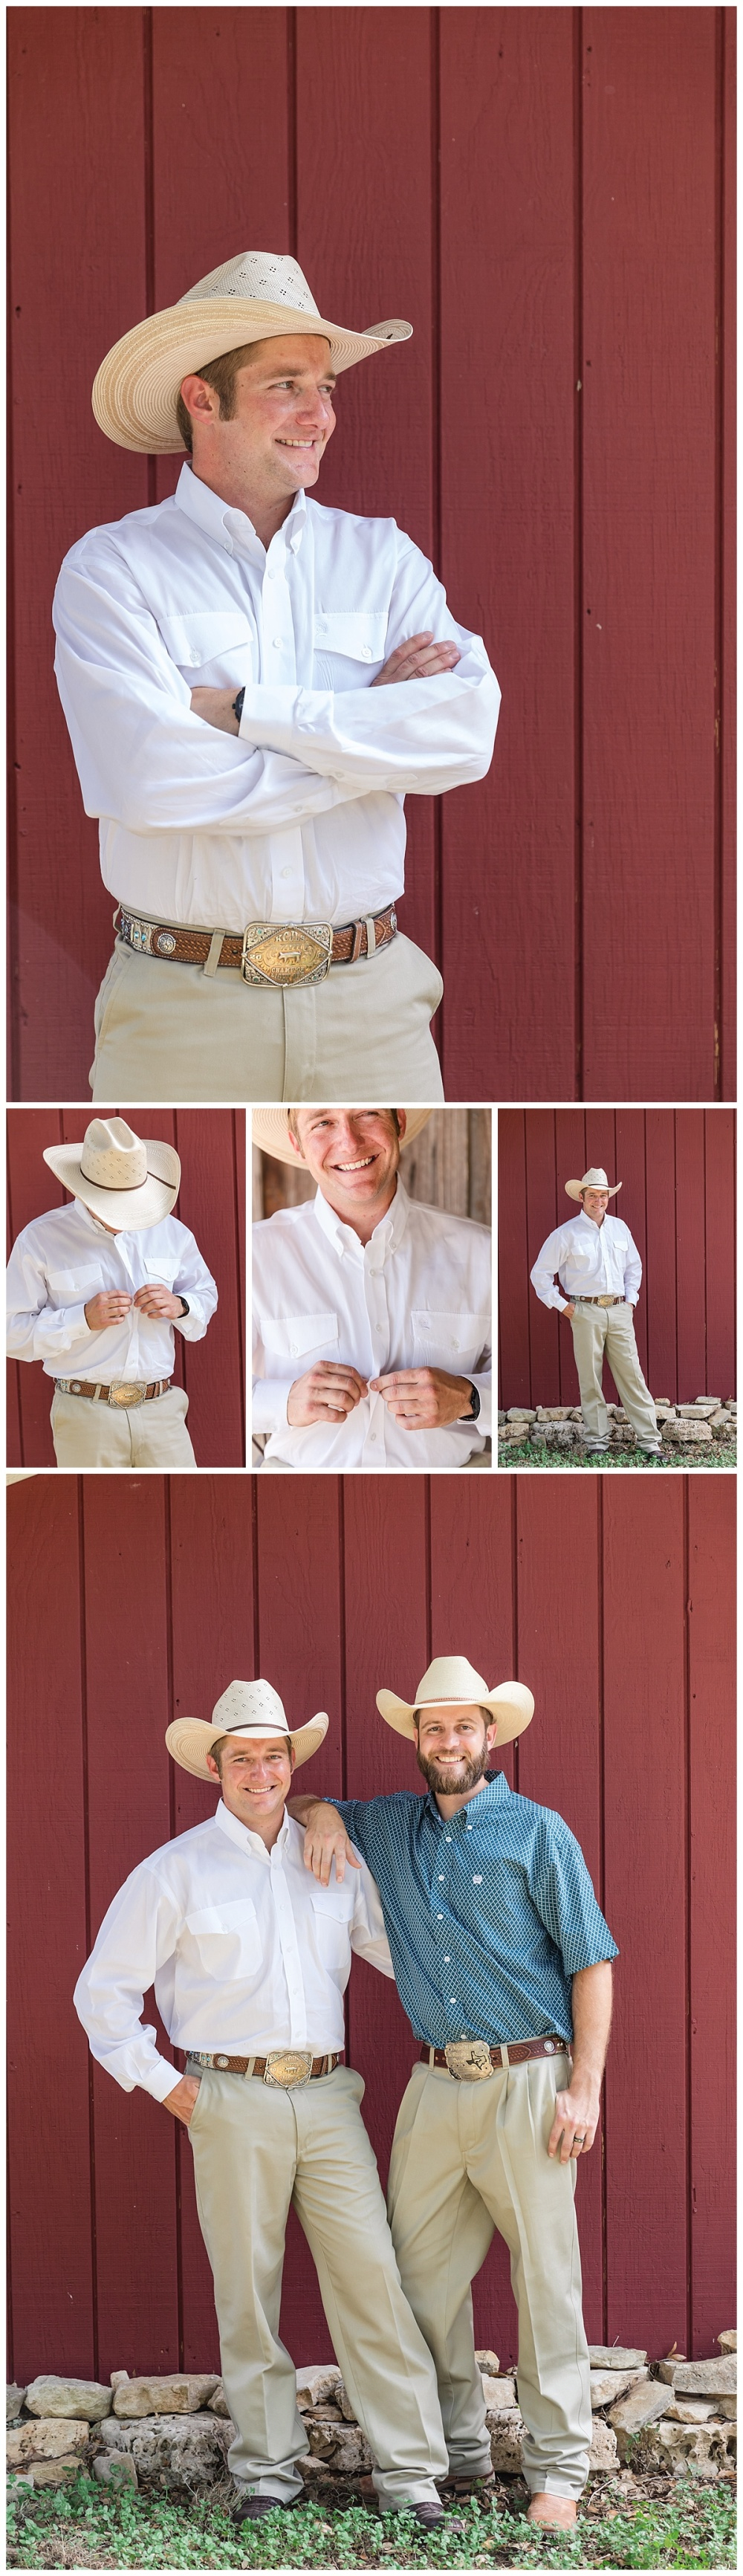 Texas-Wedding-Photographer-Braded-T-Ranch-Kendalia-Bride-Groom-Southwestern-Style-Carly-Barton-Photography-Vogt_0023.jpg